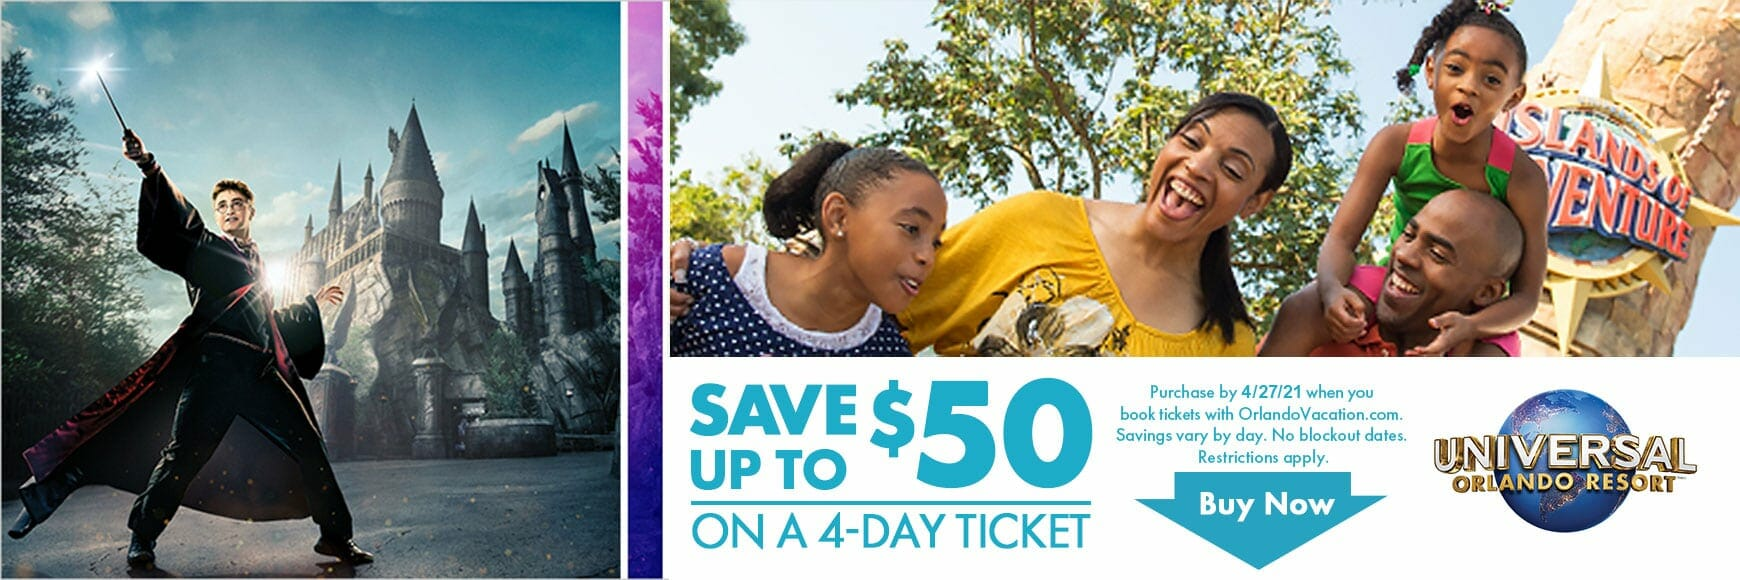 Universal Studios Save up to $50 Promo